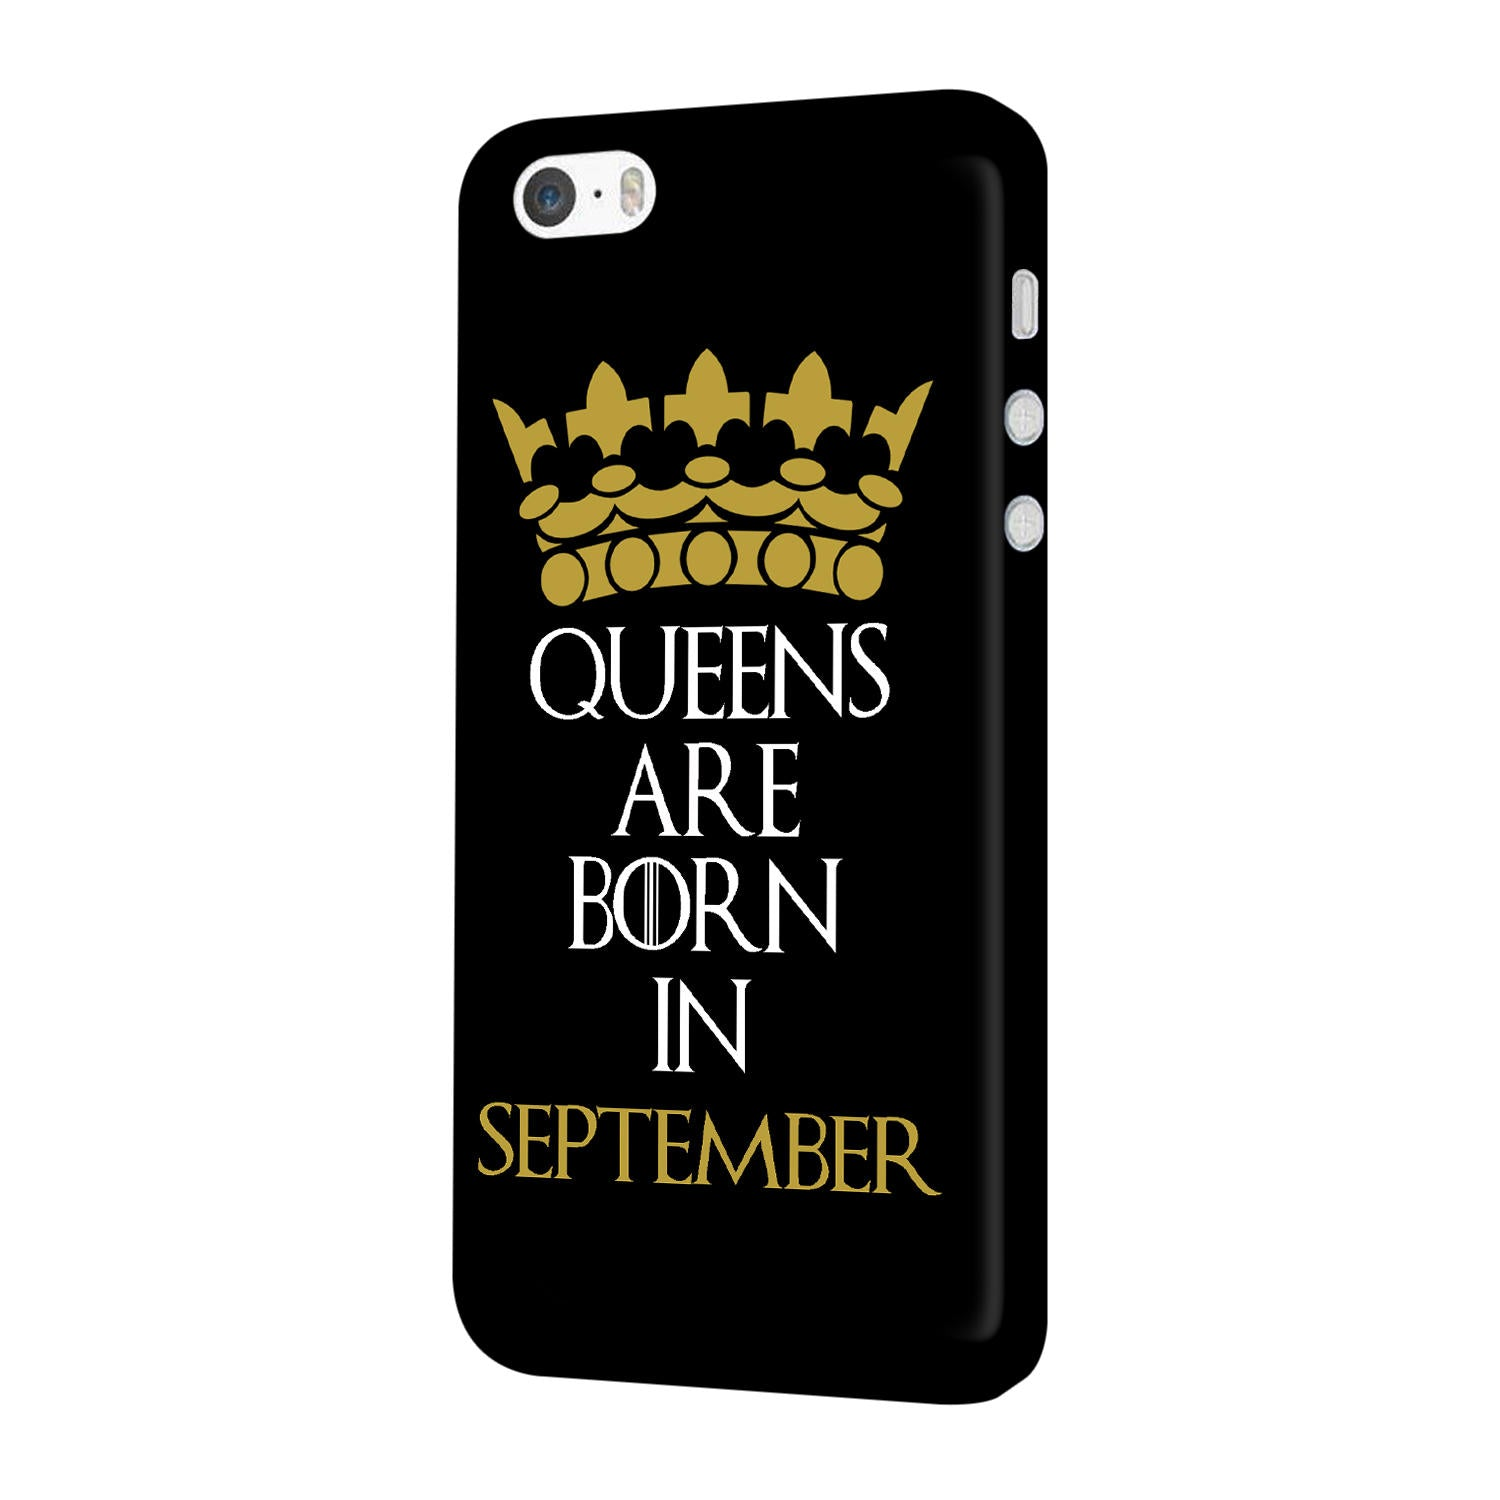 Queens September iPhone 5 Mobile Cover Case - MADANYU